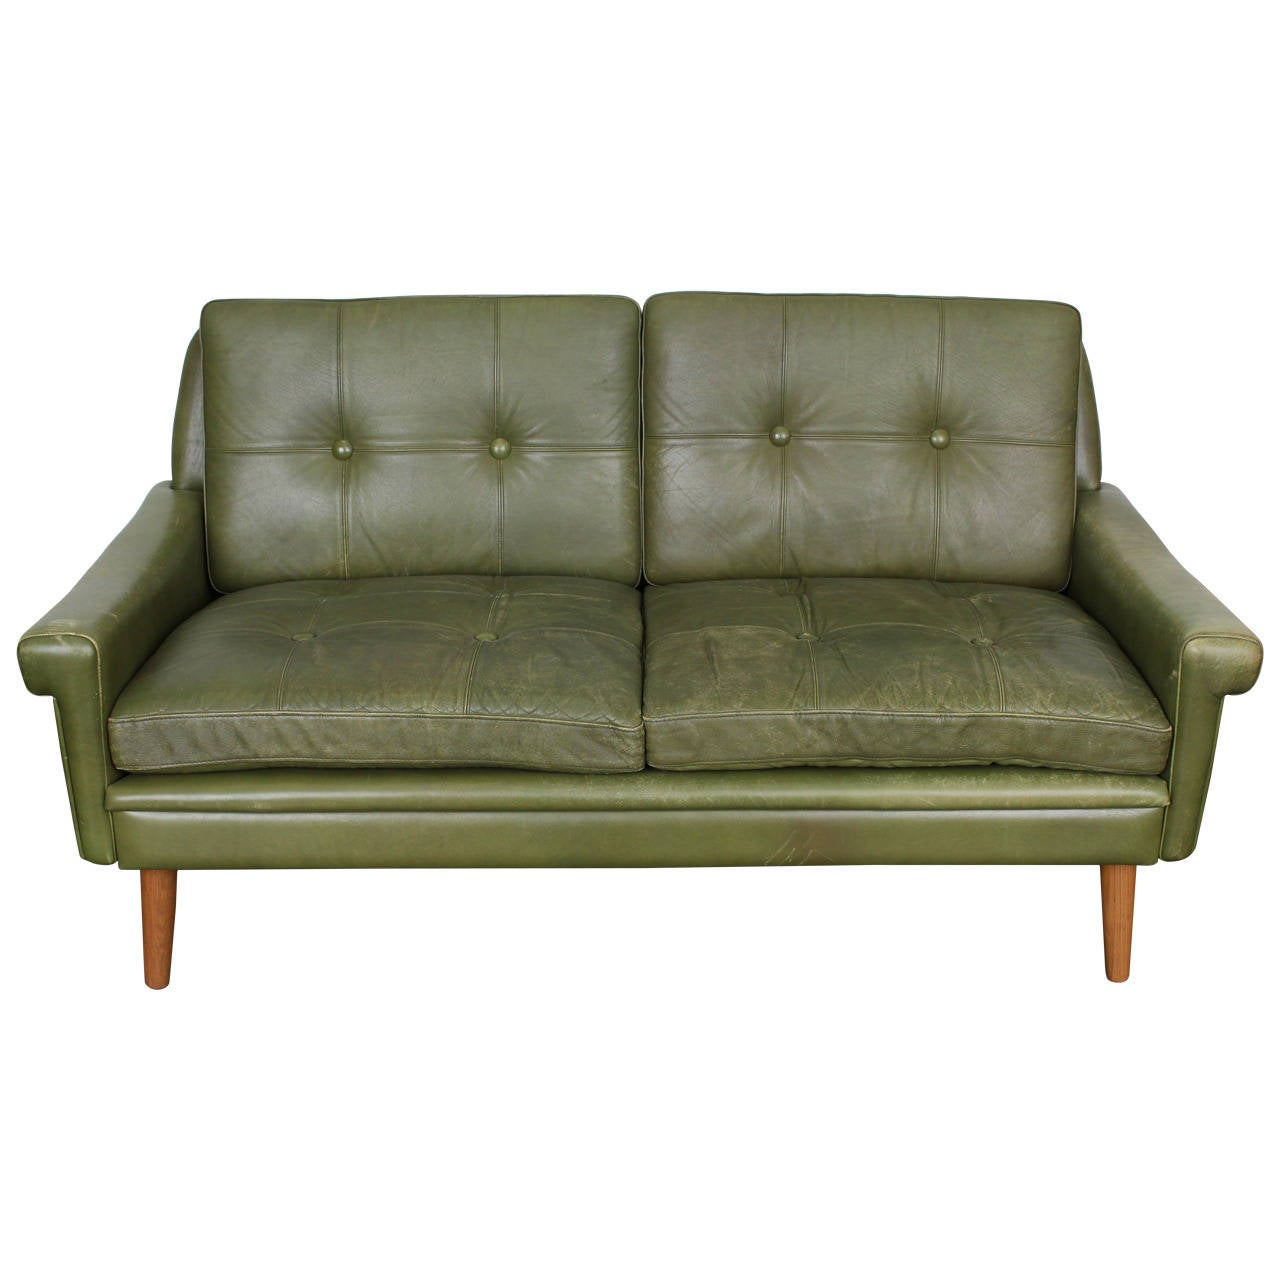 Mid century modern green leather loveseat by skippers for Modern loveseat